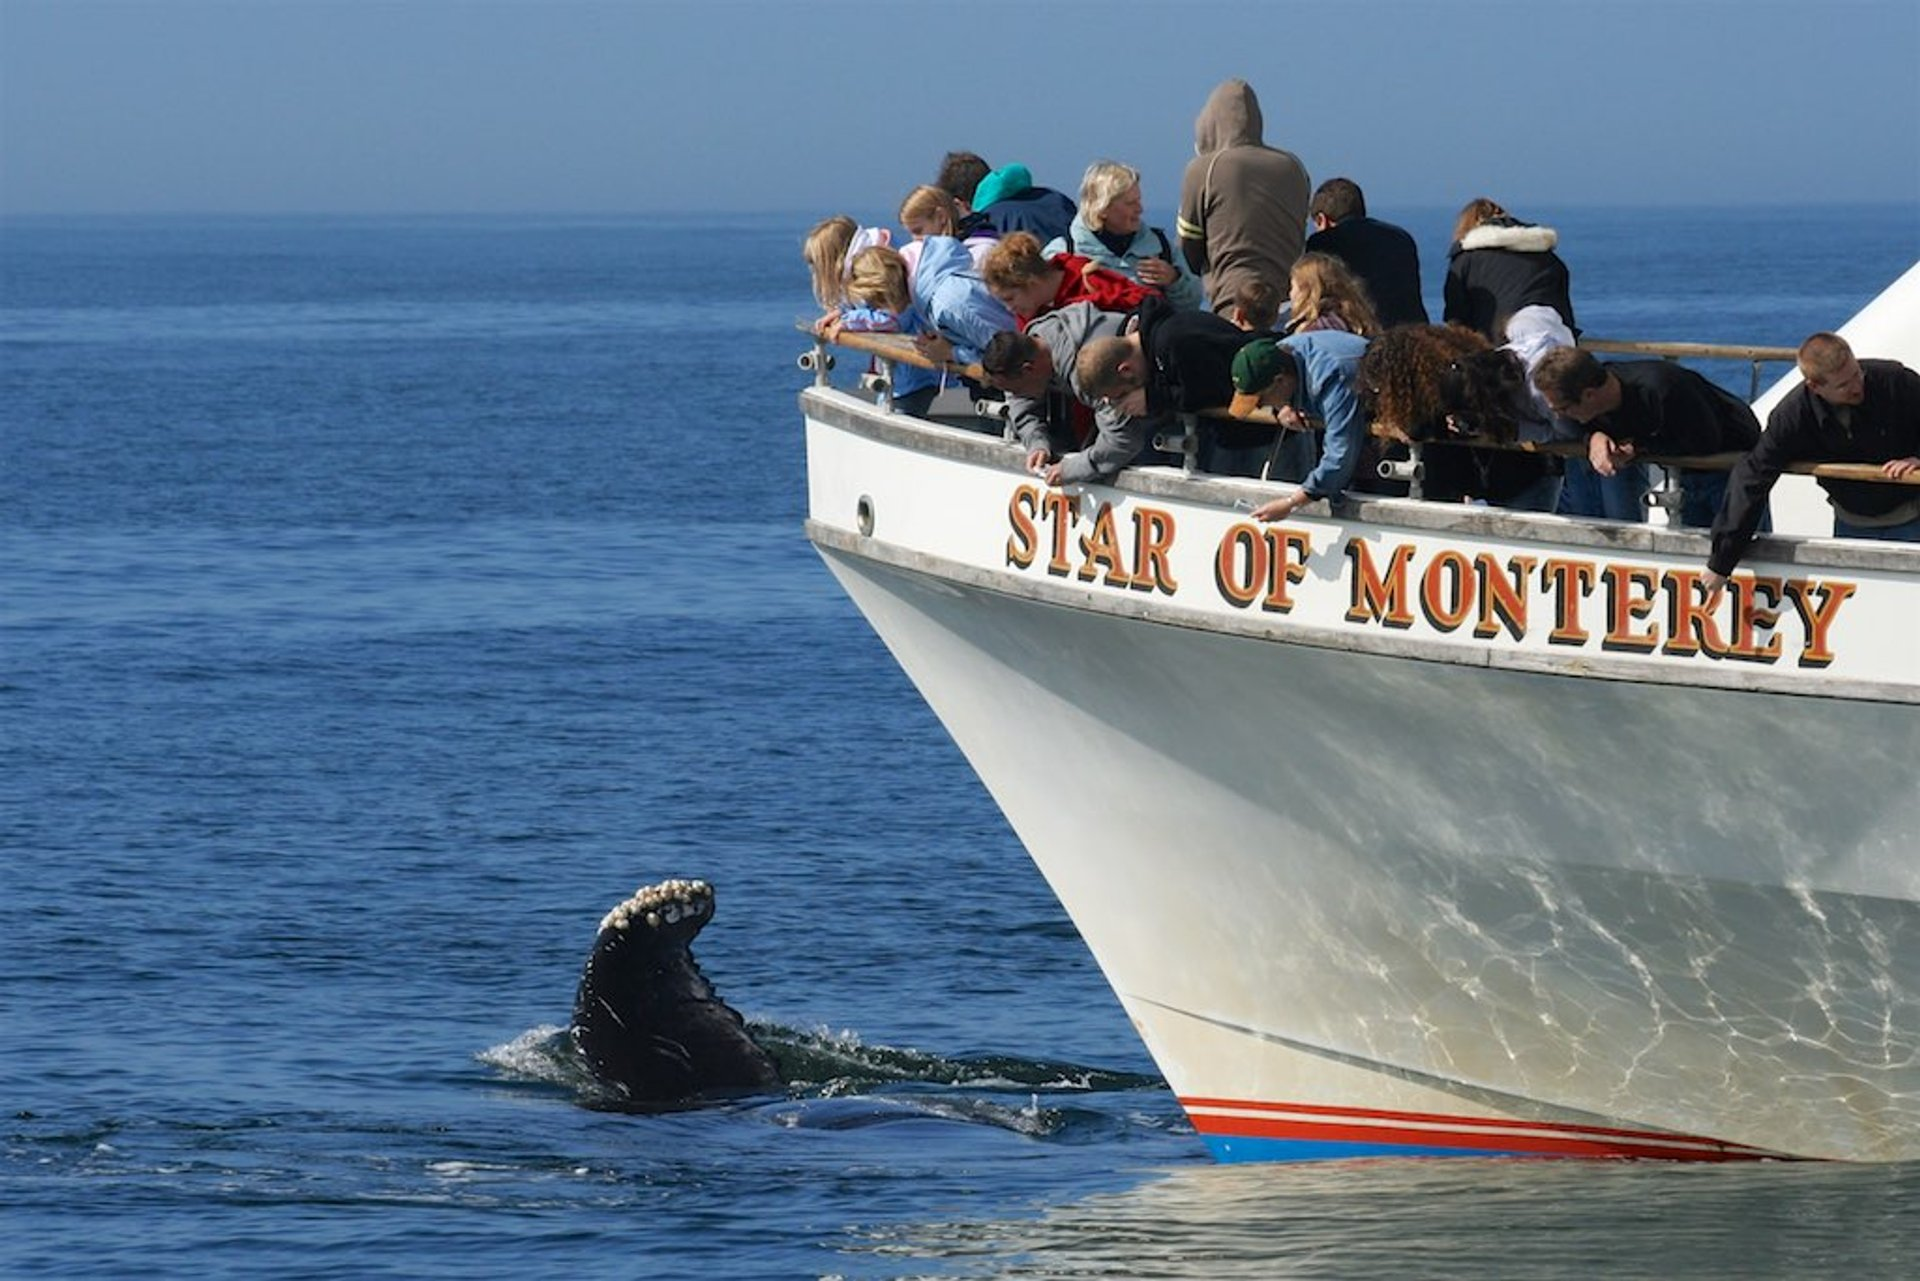 Whale watching in Monterey 2020